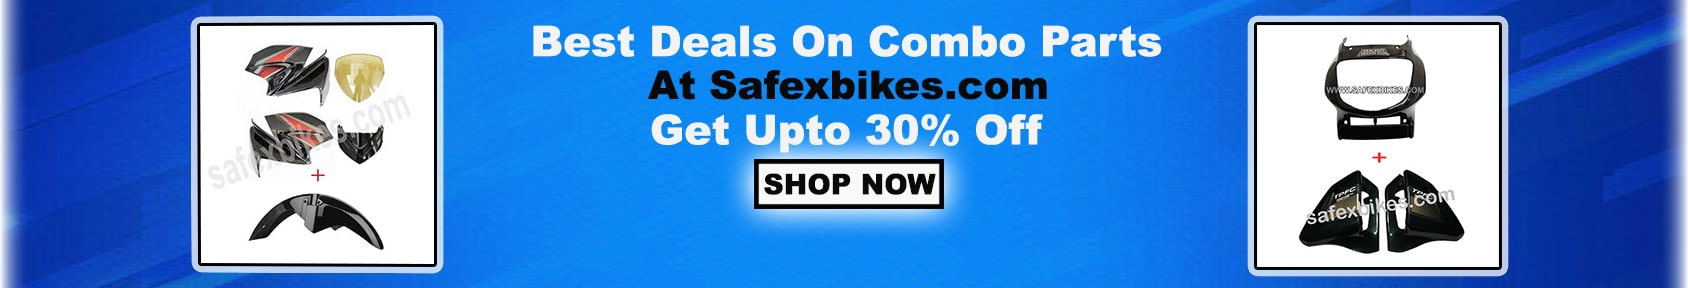 Special offers on Genuine Motorcycle Spare Parts And  		   Accessories - Buy Motorcycle and Scooter Accessories in Combo Packs at 50% Discount